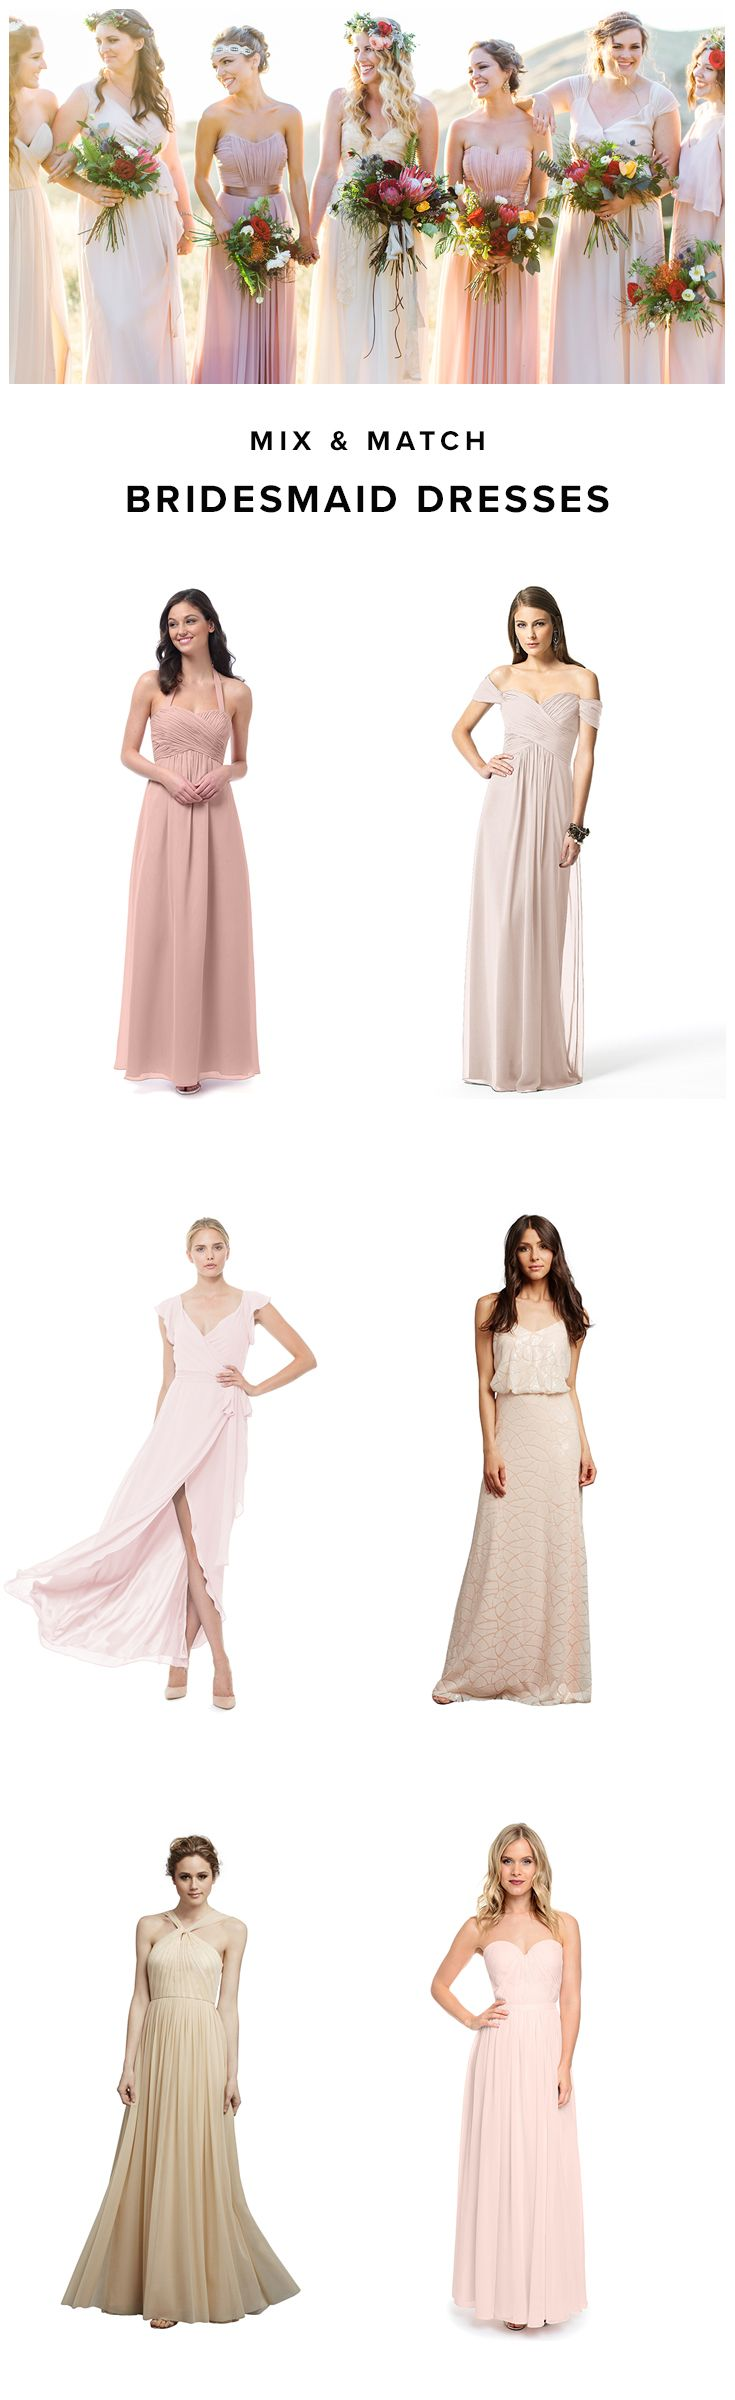 Weddington Way makes it easy to mix and match your bridesmaid dresses. 1000s of styles to chose from, Weddington Way has the largest assortment of bridesmaid's dresses anywhere! Sign up now to shop bridesmaid dresses.